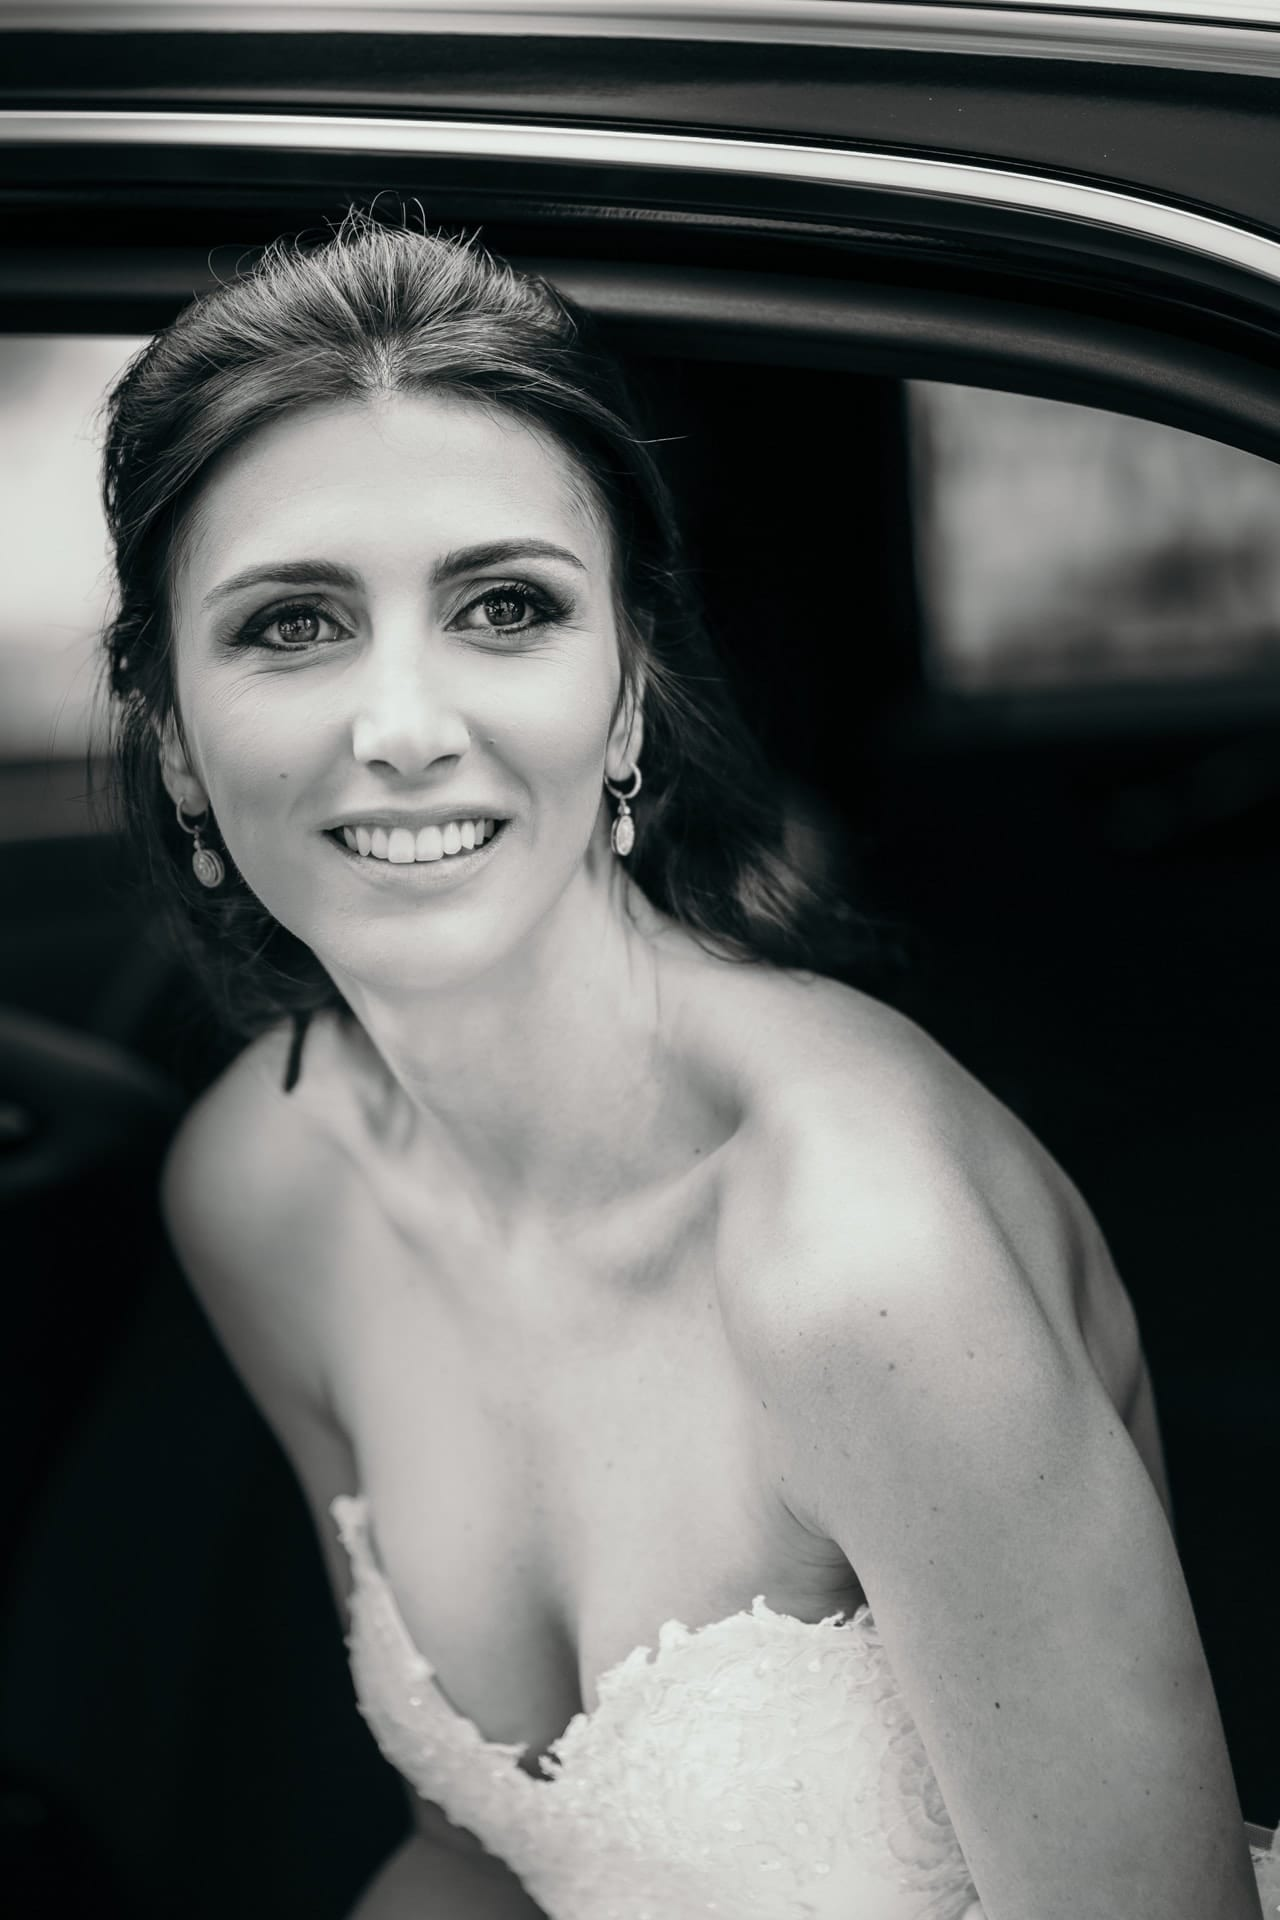 https://s3-eu-central-1.amazonaws.com/righiphotography-com/wp-content/uploads/2020/02/02183205/Wedding-Photo-No-Pose-Studio-Fotografico-Righi-RIGHI-20.jpg